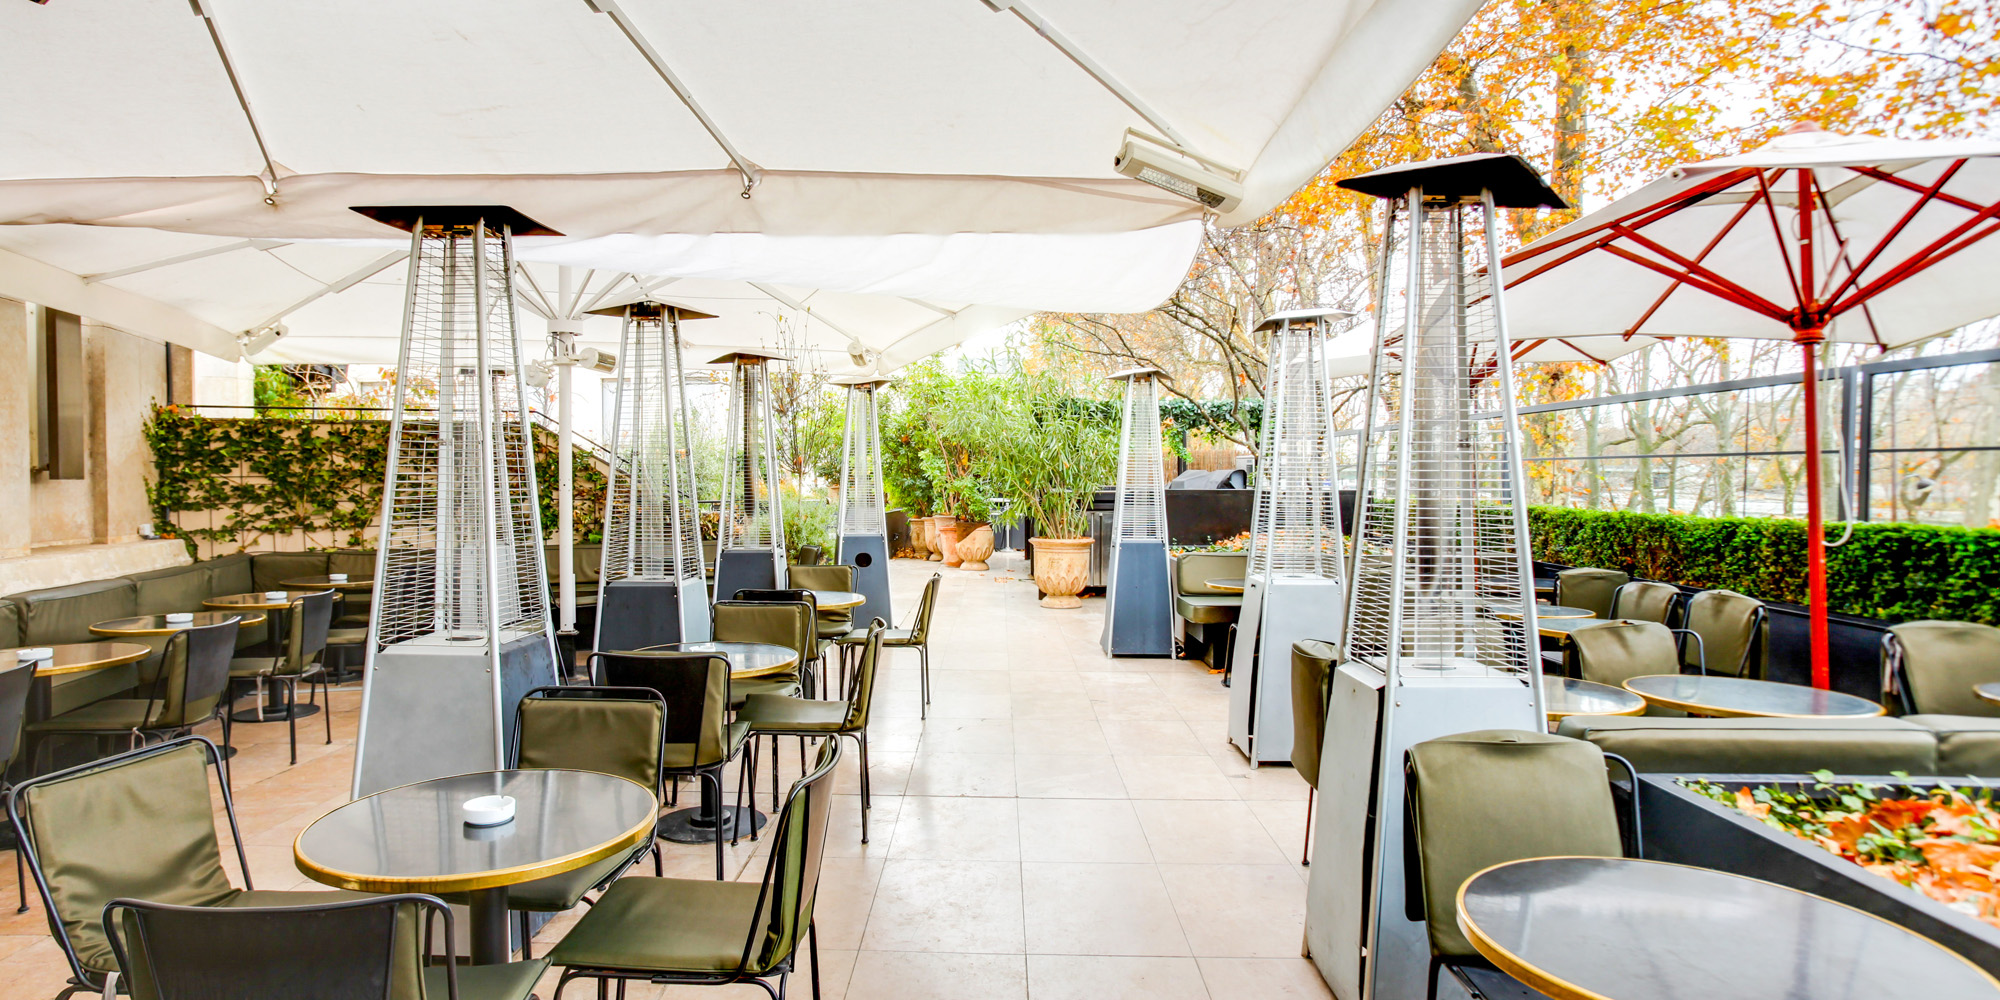 Brunch Paris Terrasse Brunch Monsieur Bleu 75016 Paris Oubruncher